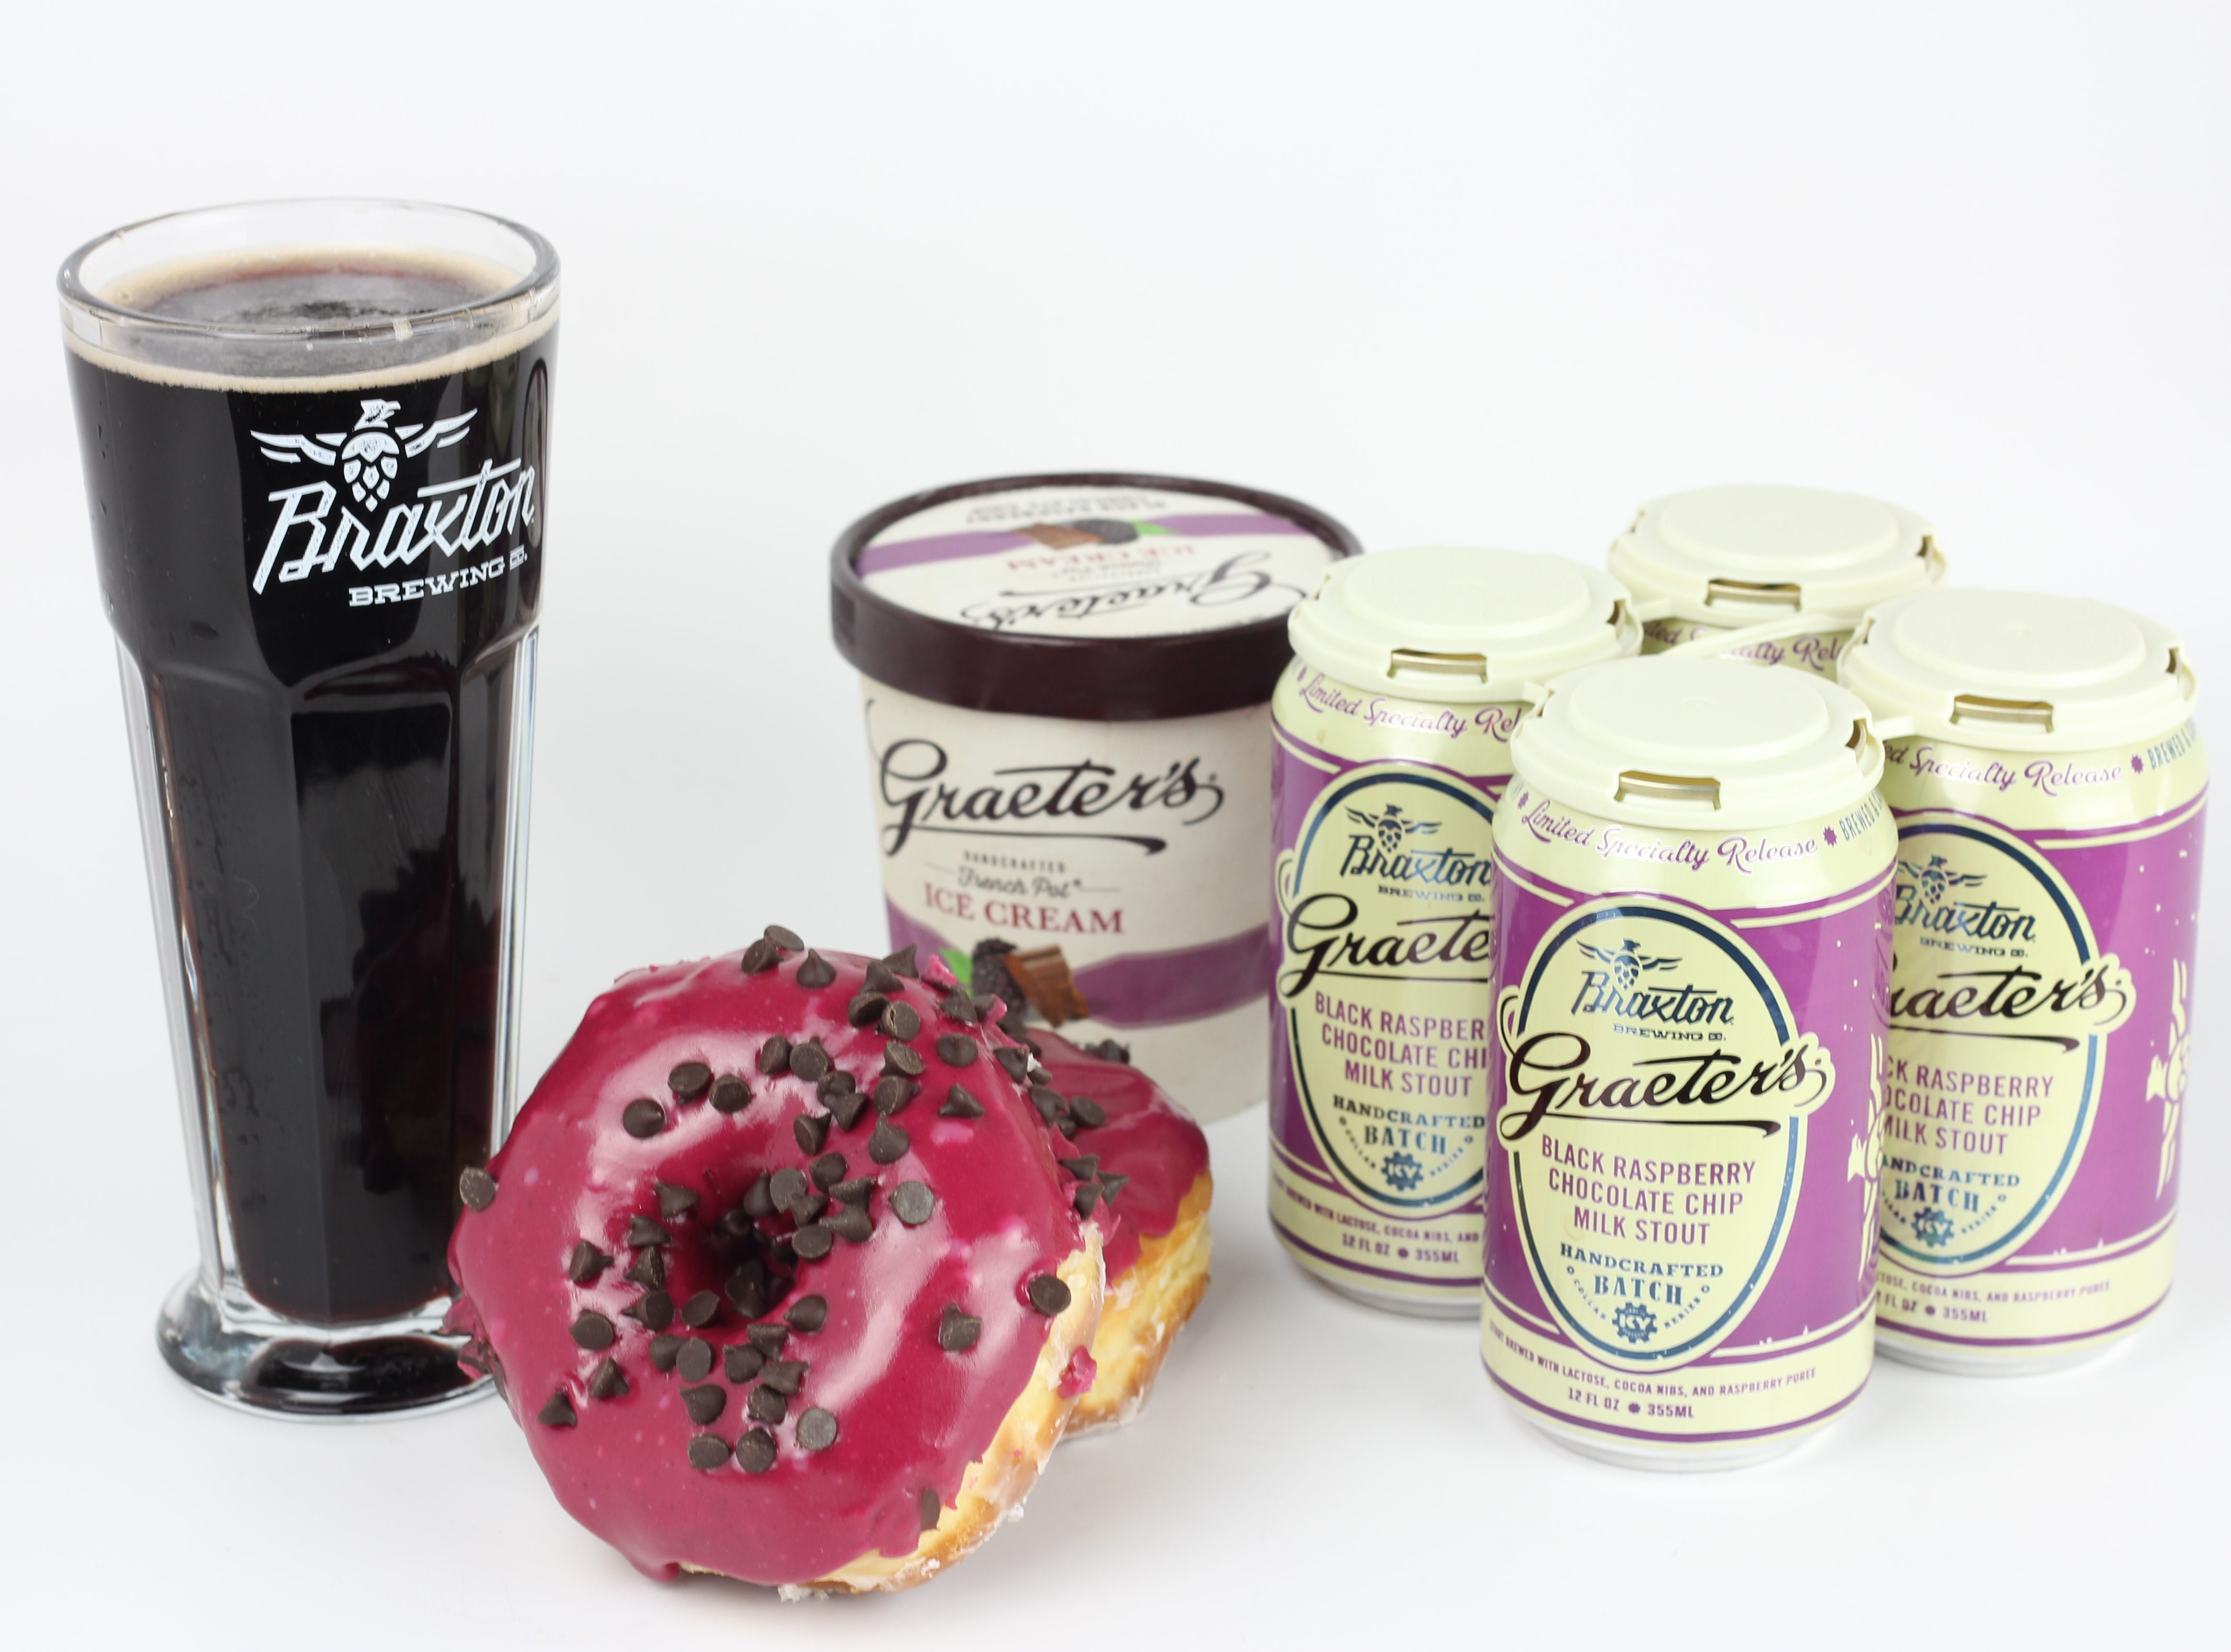 Graeter's and Braxton Brewing Company are relaunching Black Raspberry Chocolate Chip Milk Stout. To mark the occasion, Graeter's is releasing Black Raspberry Chocolate Chip Doughnuts.